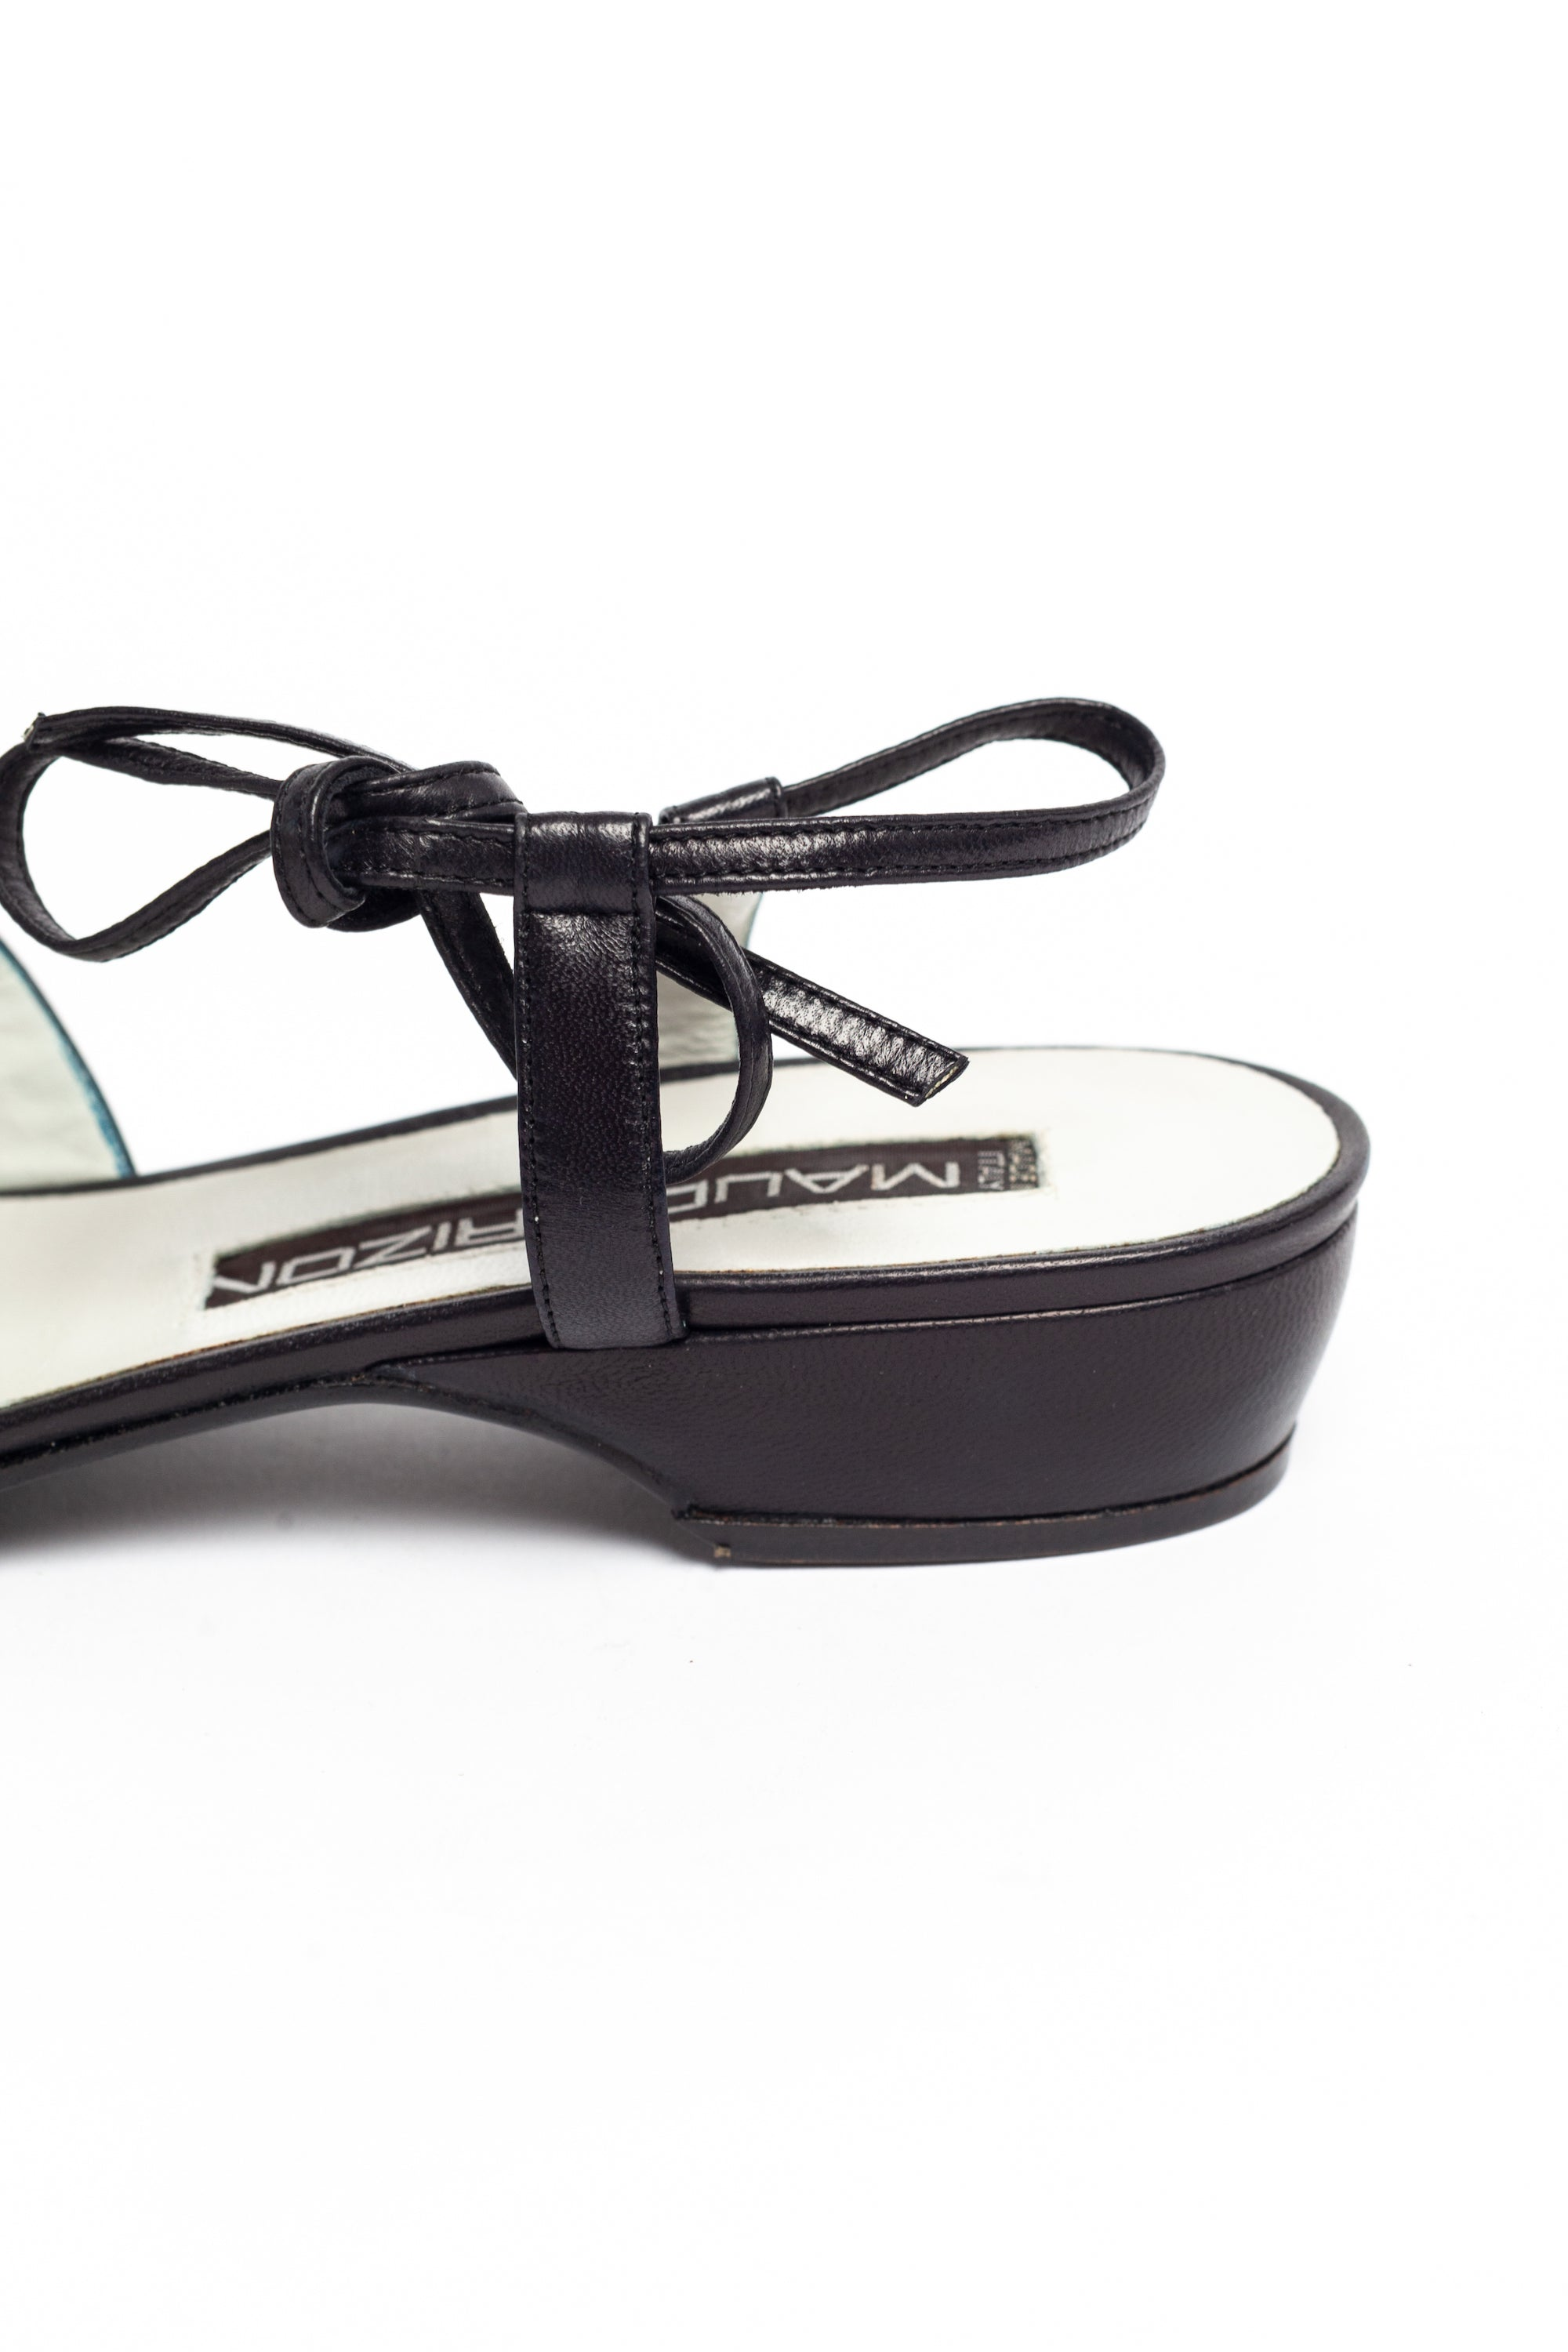 Maud Frizon <br> 1980's jewelled leather flat sandals with ankle ties